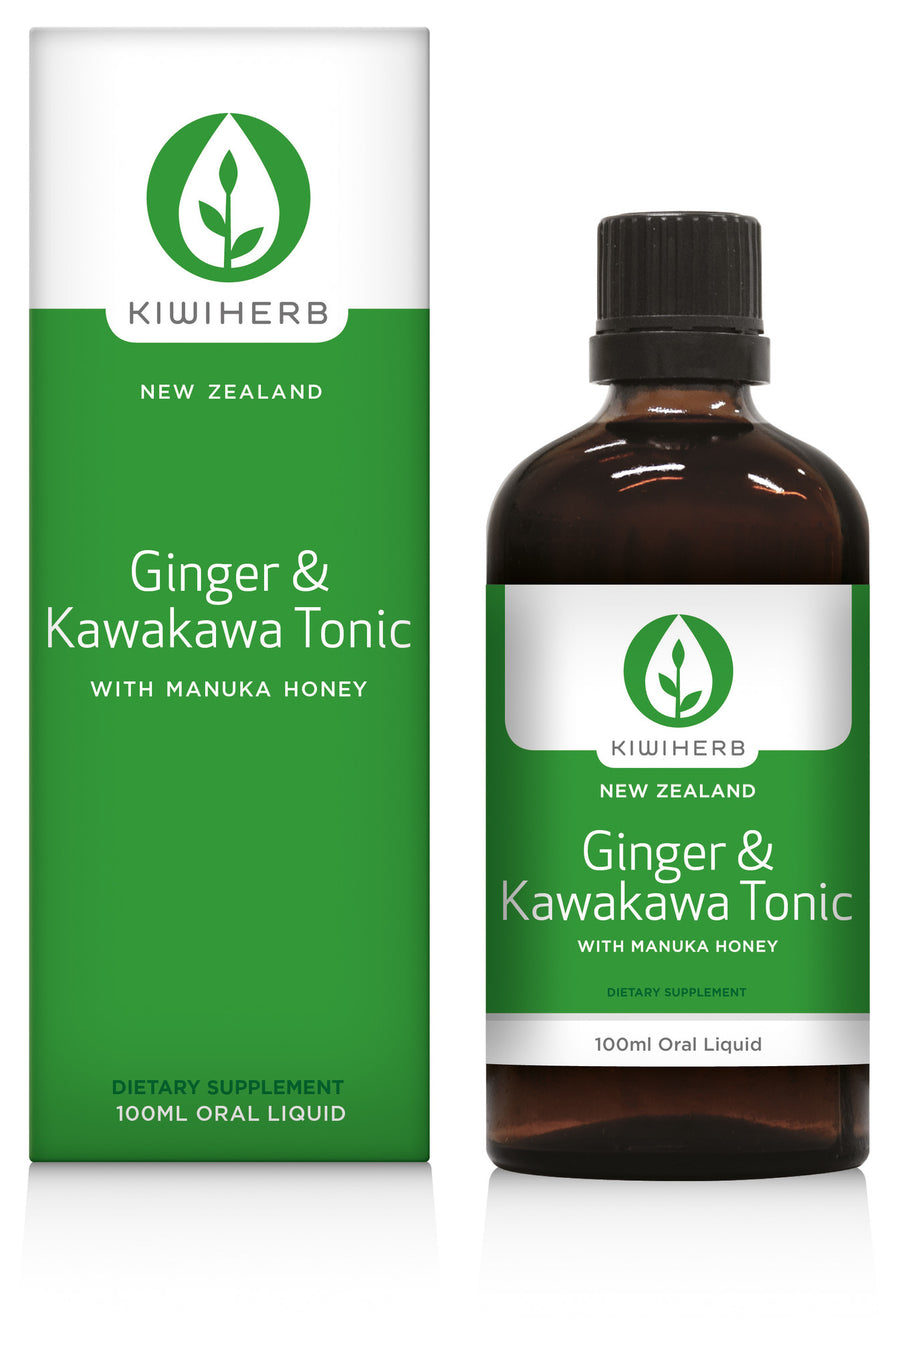 KIWI HERB Ging&Kawakawa Tonic 100ml